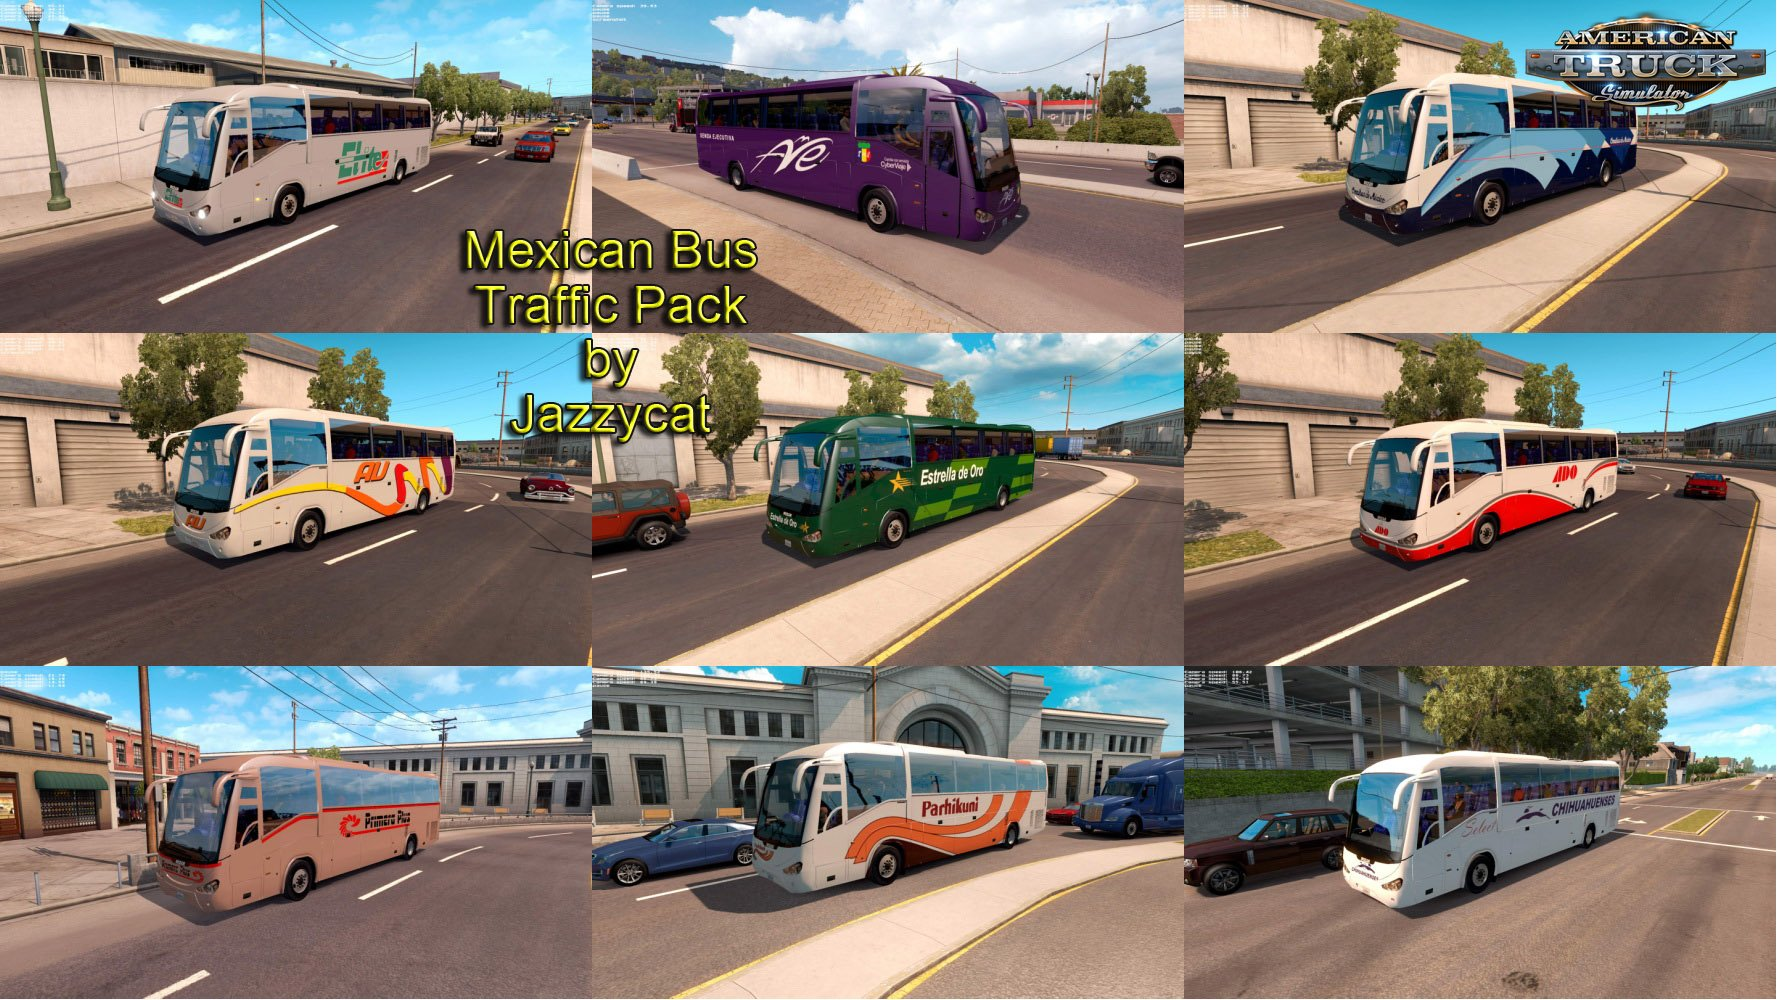 Mexican Bus Traffic Pack v1.0 by Jazzycat